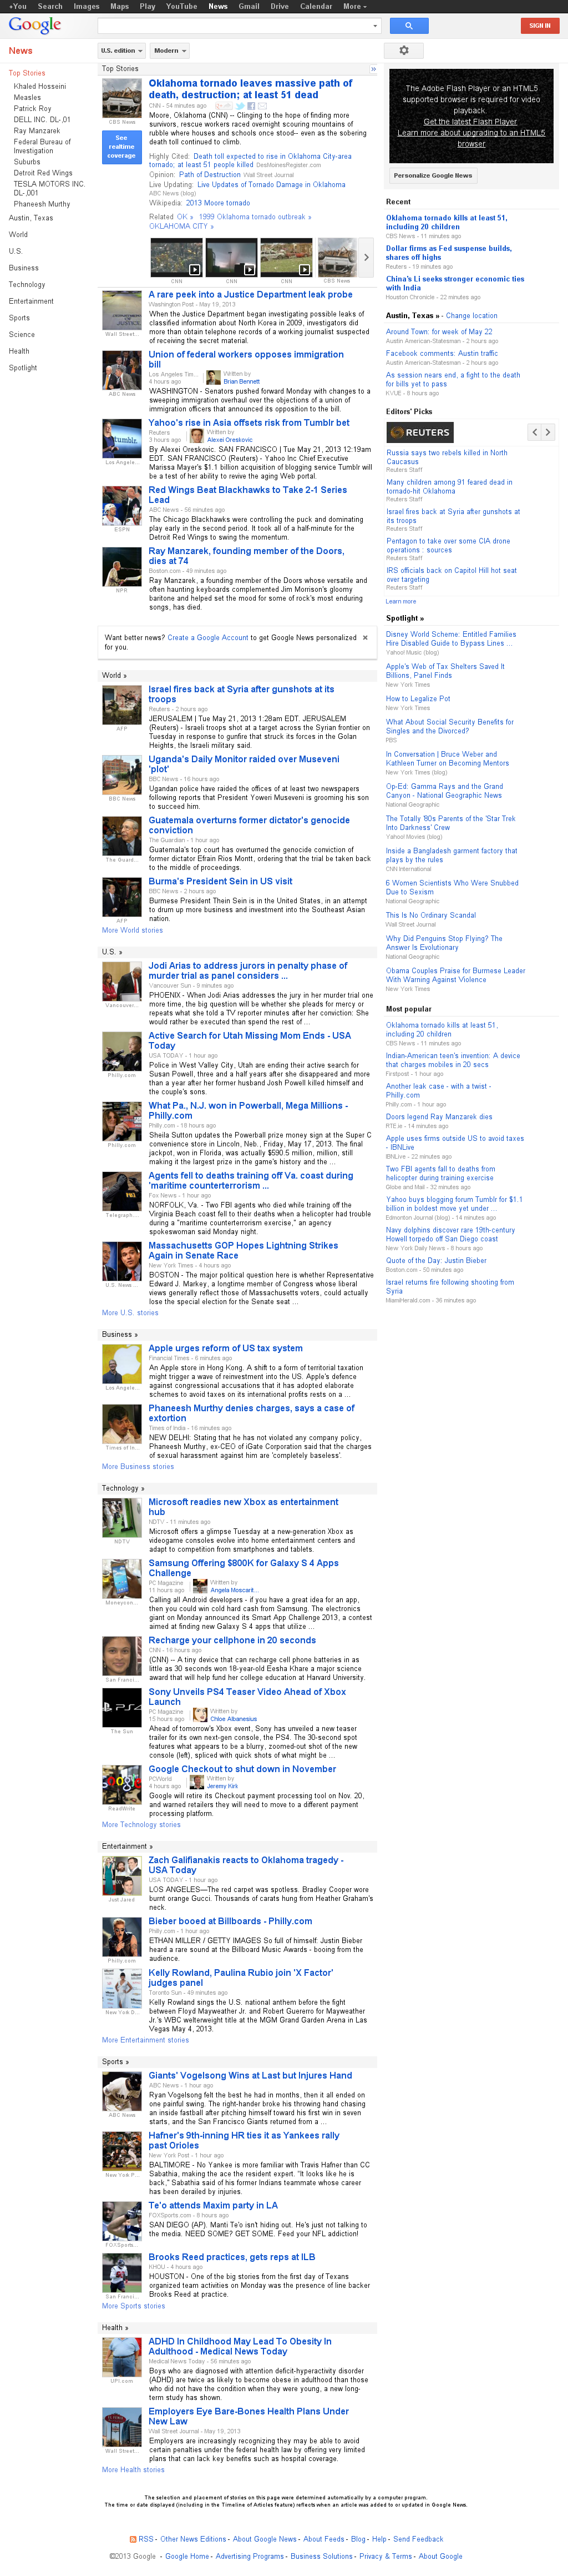 Google News at Tuesday May 21, 2013, 8:07 a.m. UTC